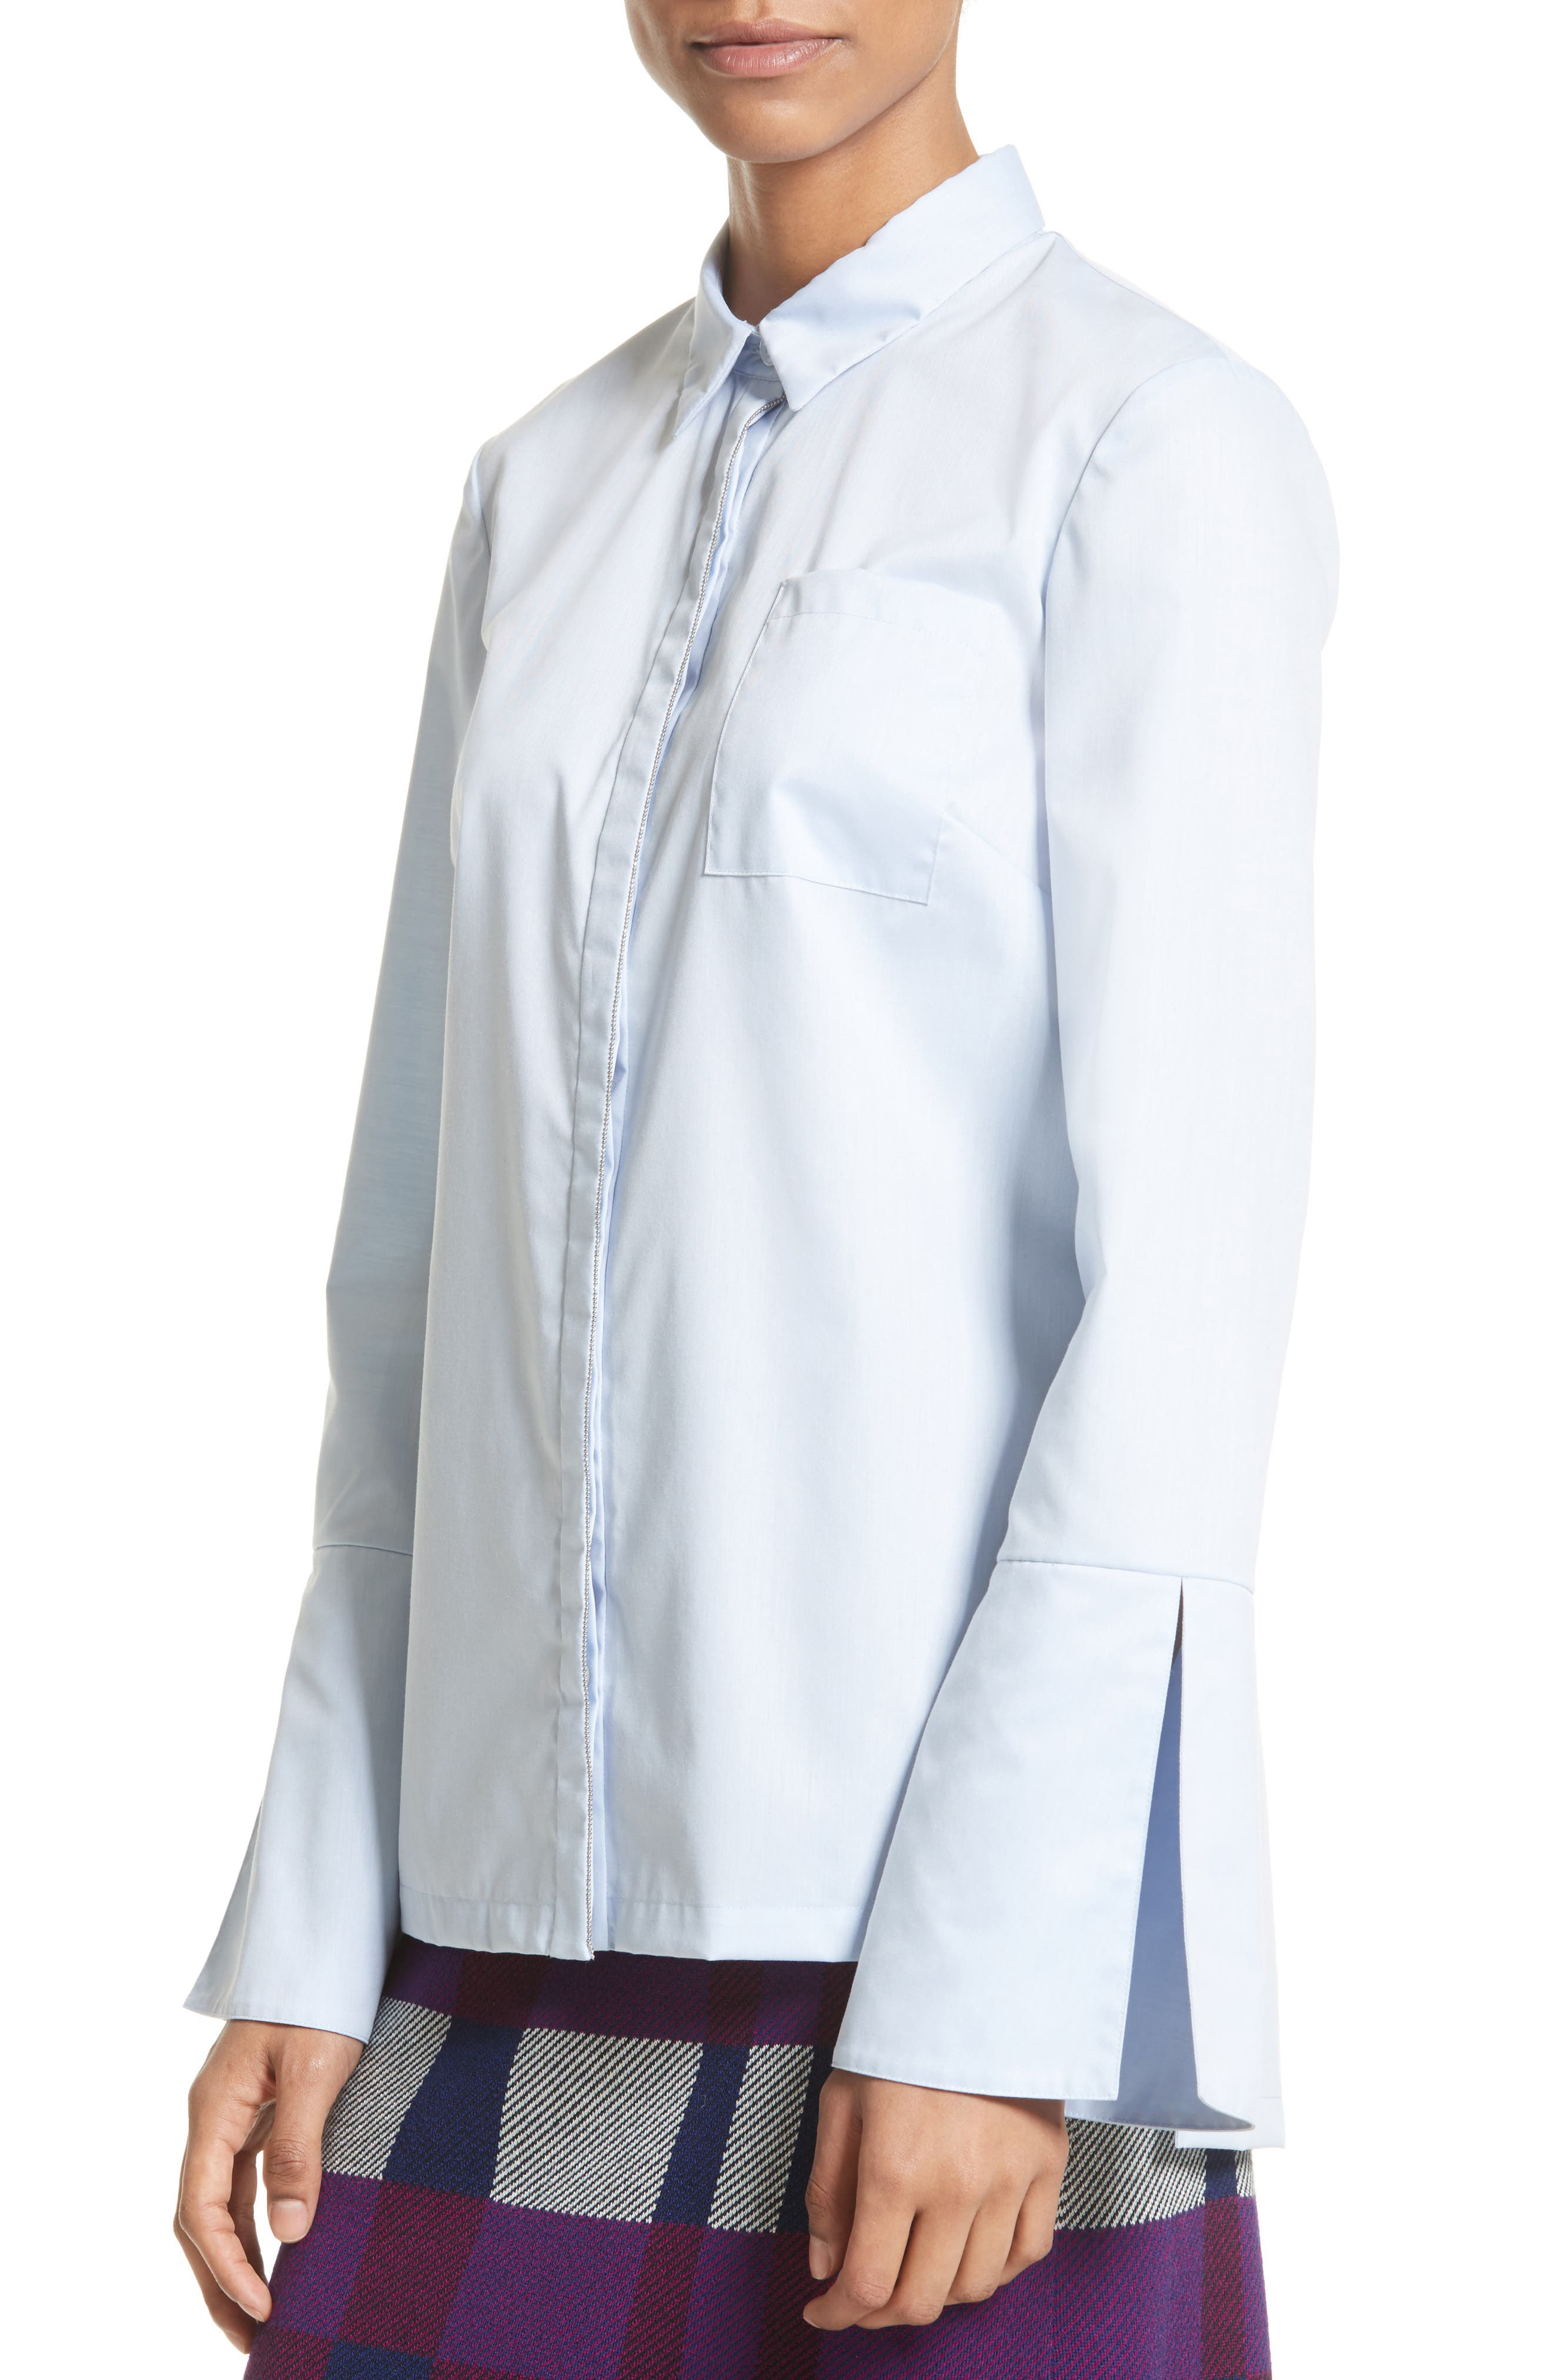 Bell Sleeve High/Low Oxford Shirt,                             Alternate thumbnail 4, color,                             420